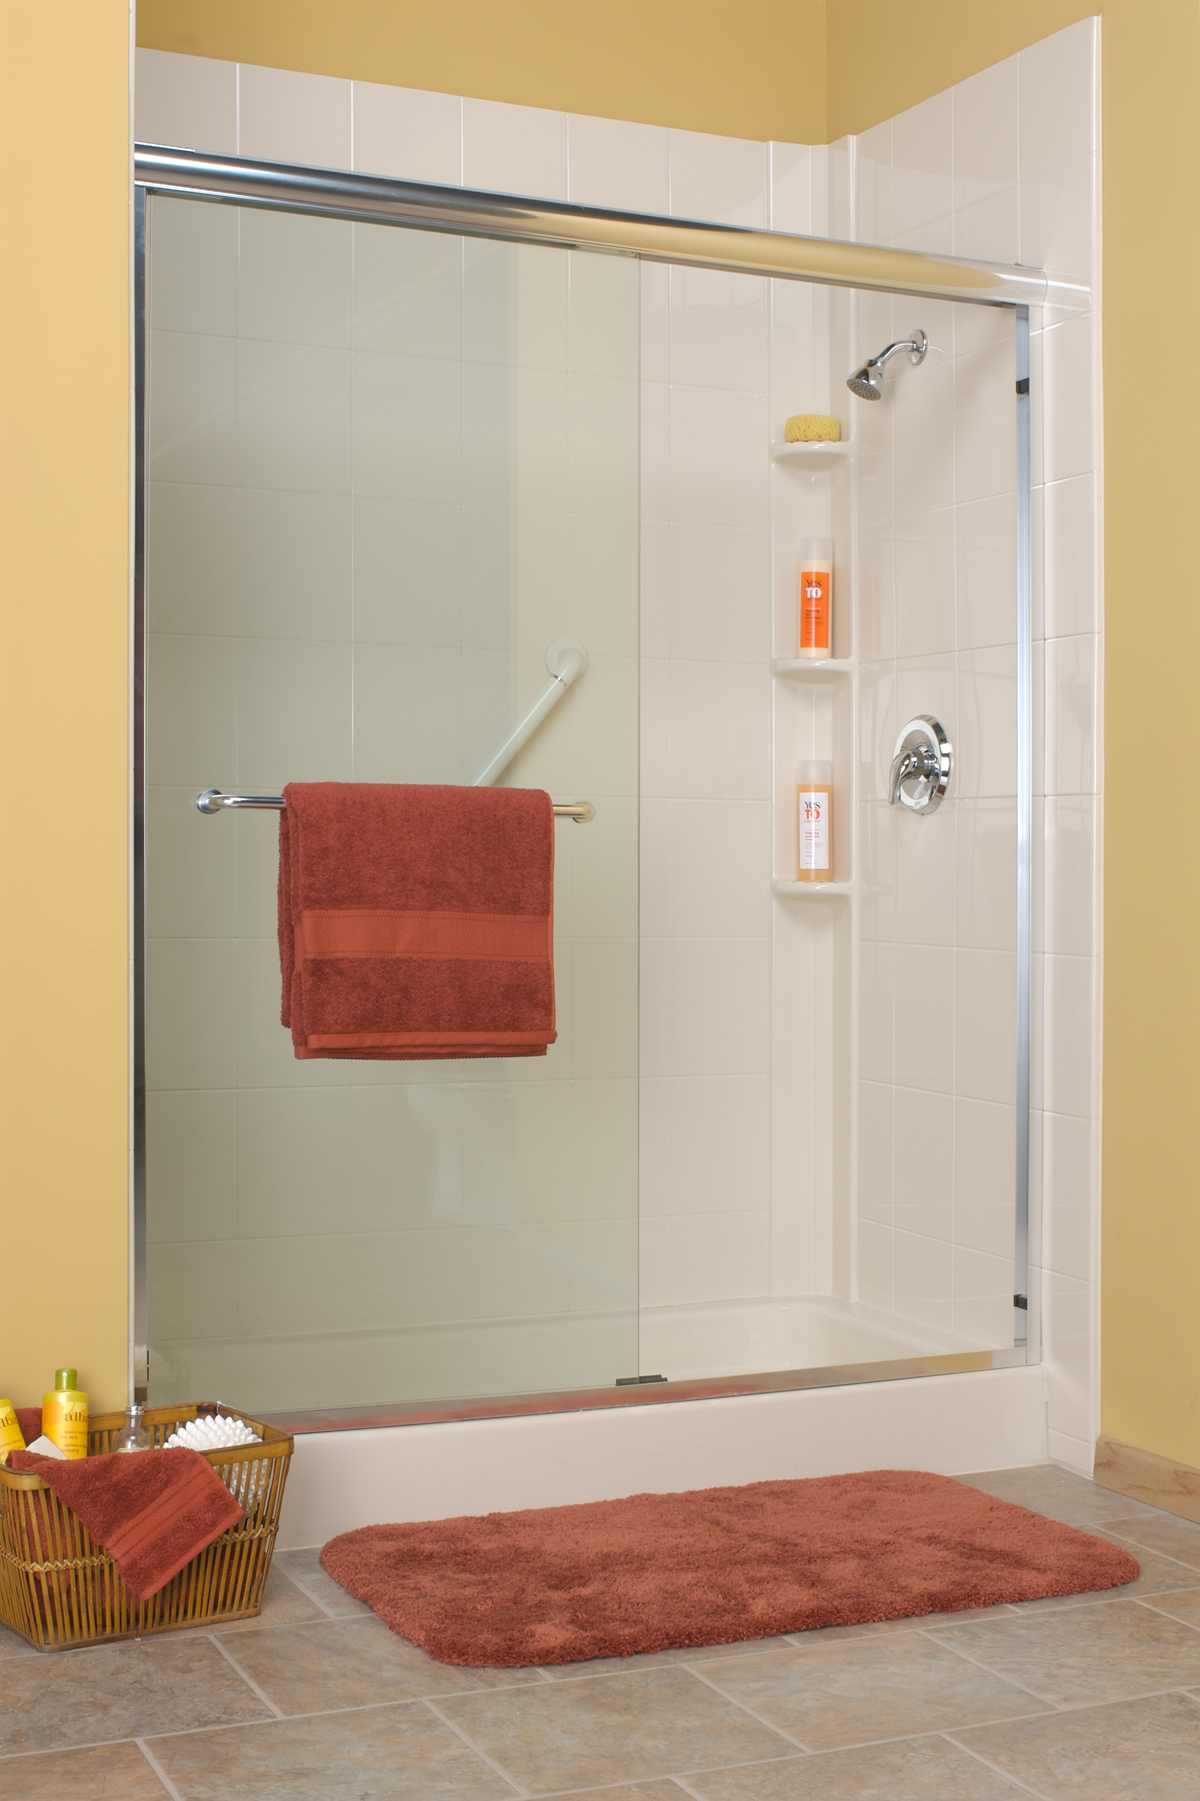 Replacing Bath With Walk In Shower replace tub shower san antonio tx | austin